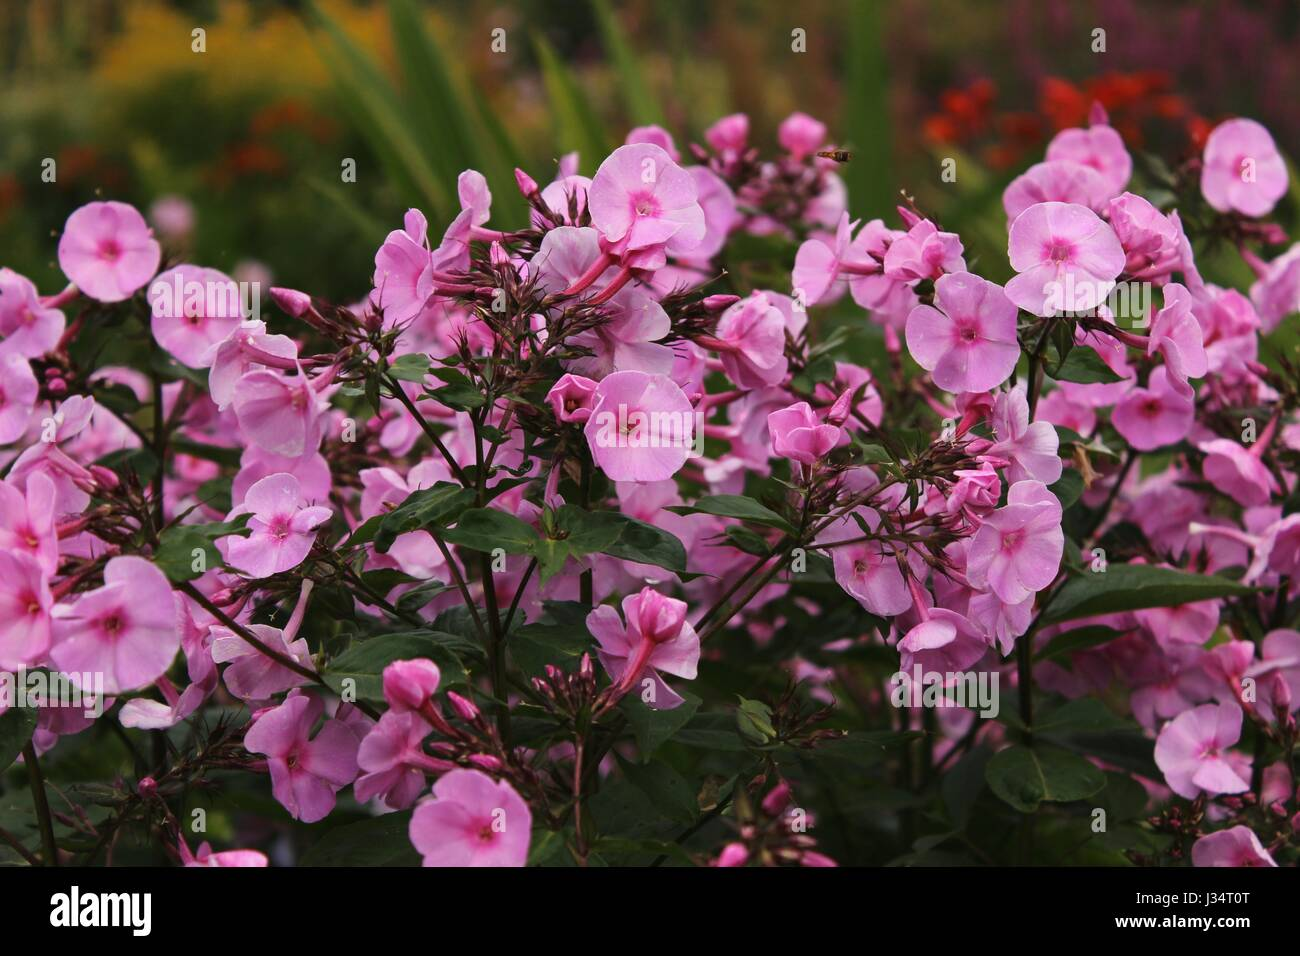 Little pink flowers in a bush with other flowers in the background little pink flowers in a bush with other flowers in the background mightylinksfo